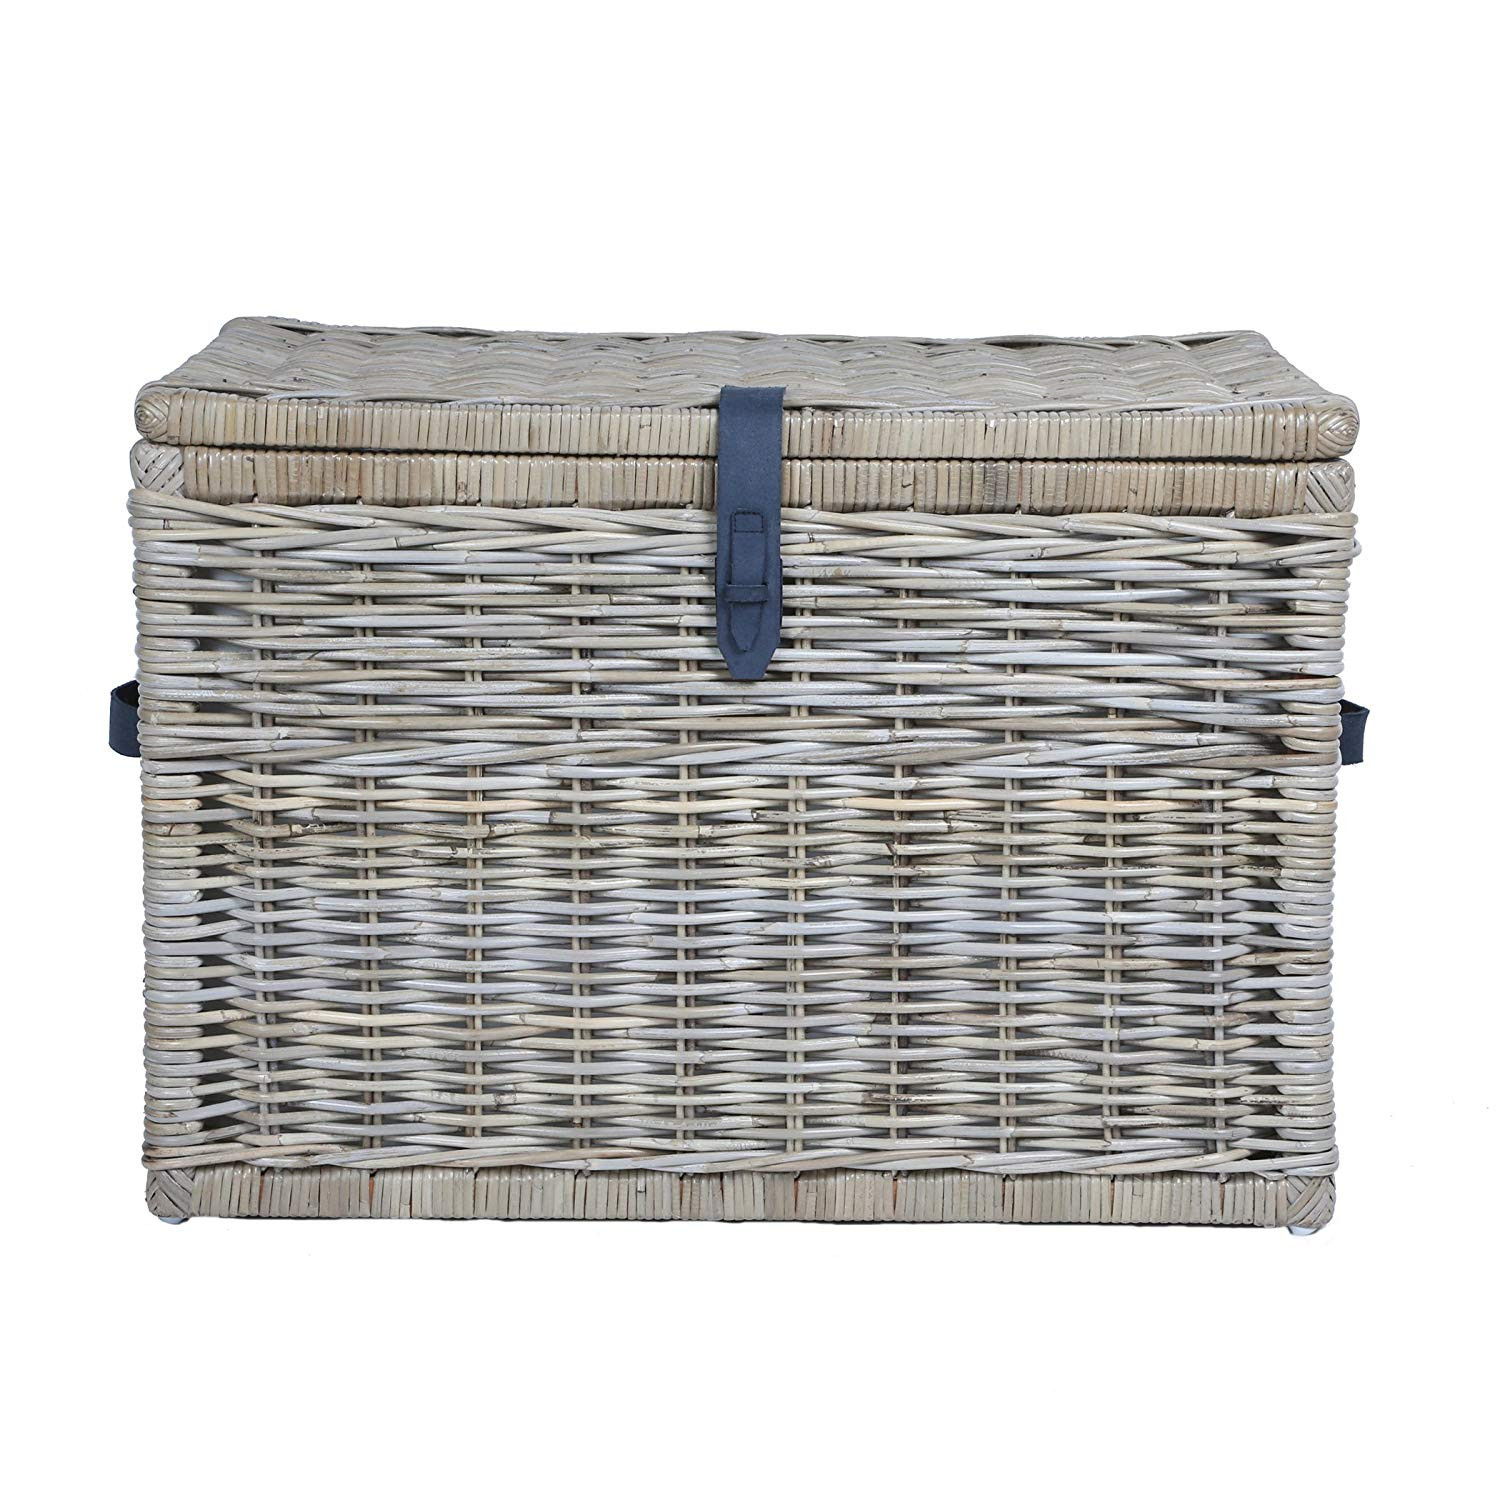 The Basket Lady Deep Kubu Wicker Storage Trunk